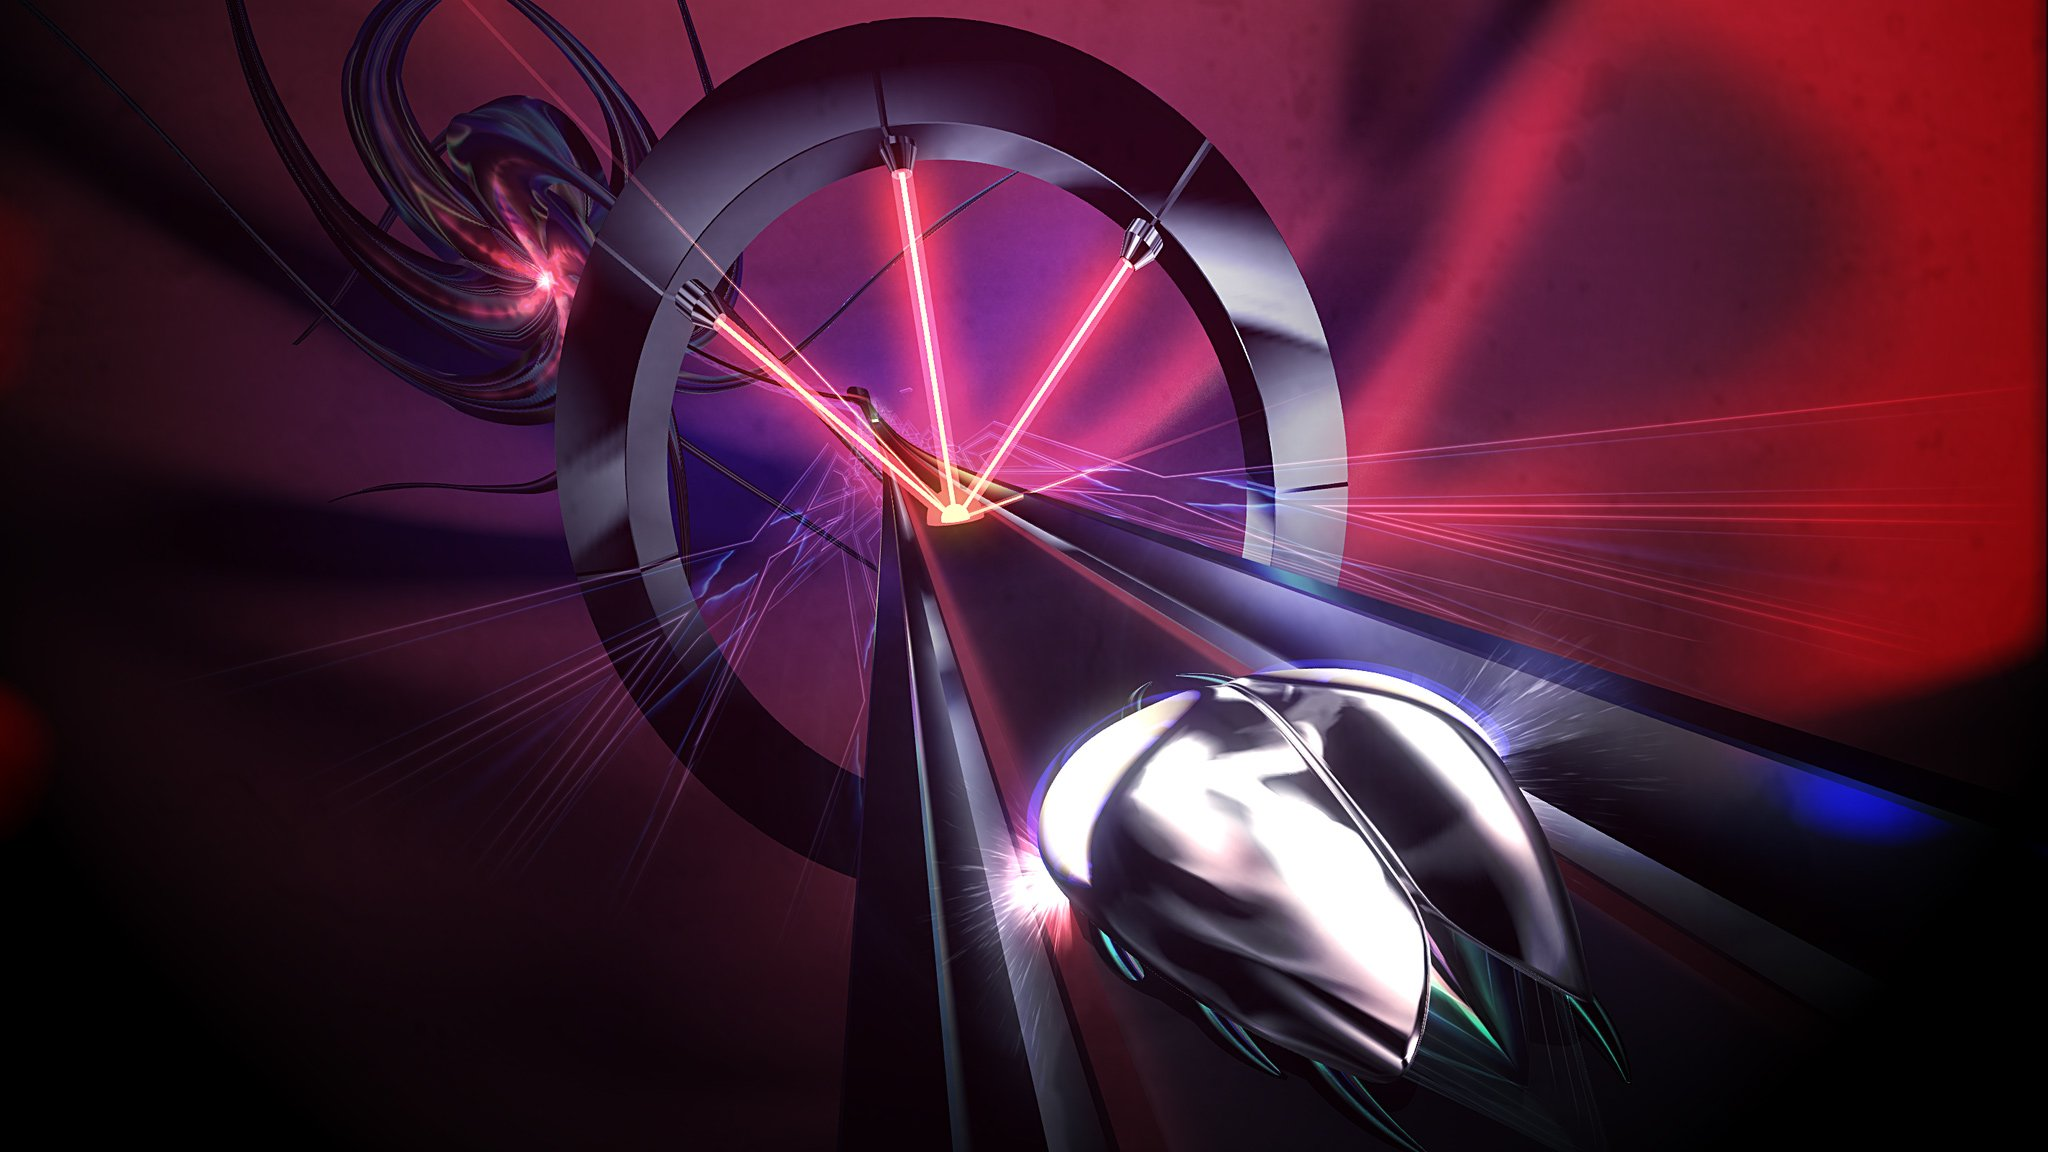 Thumper review